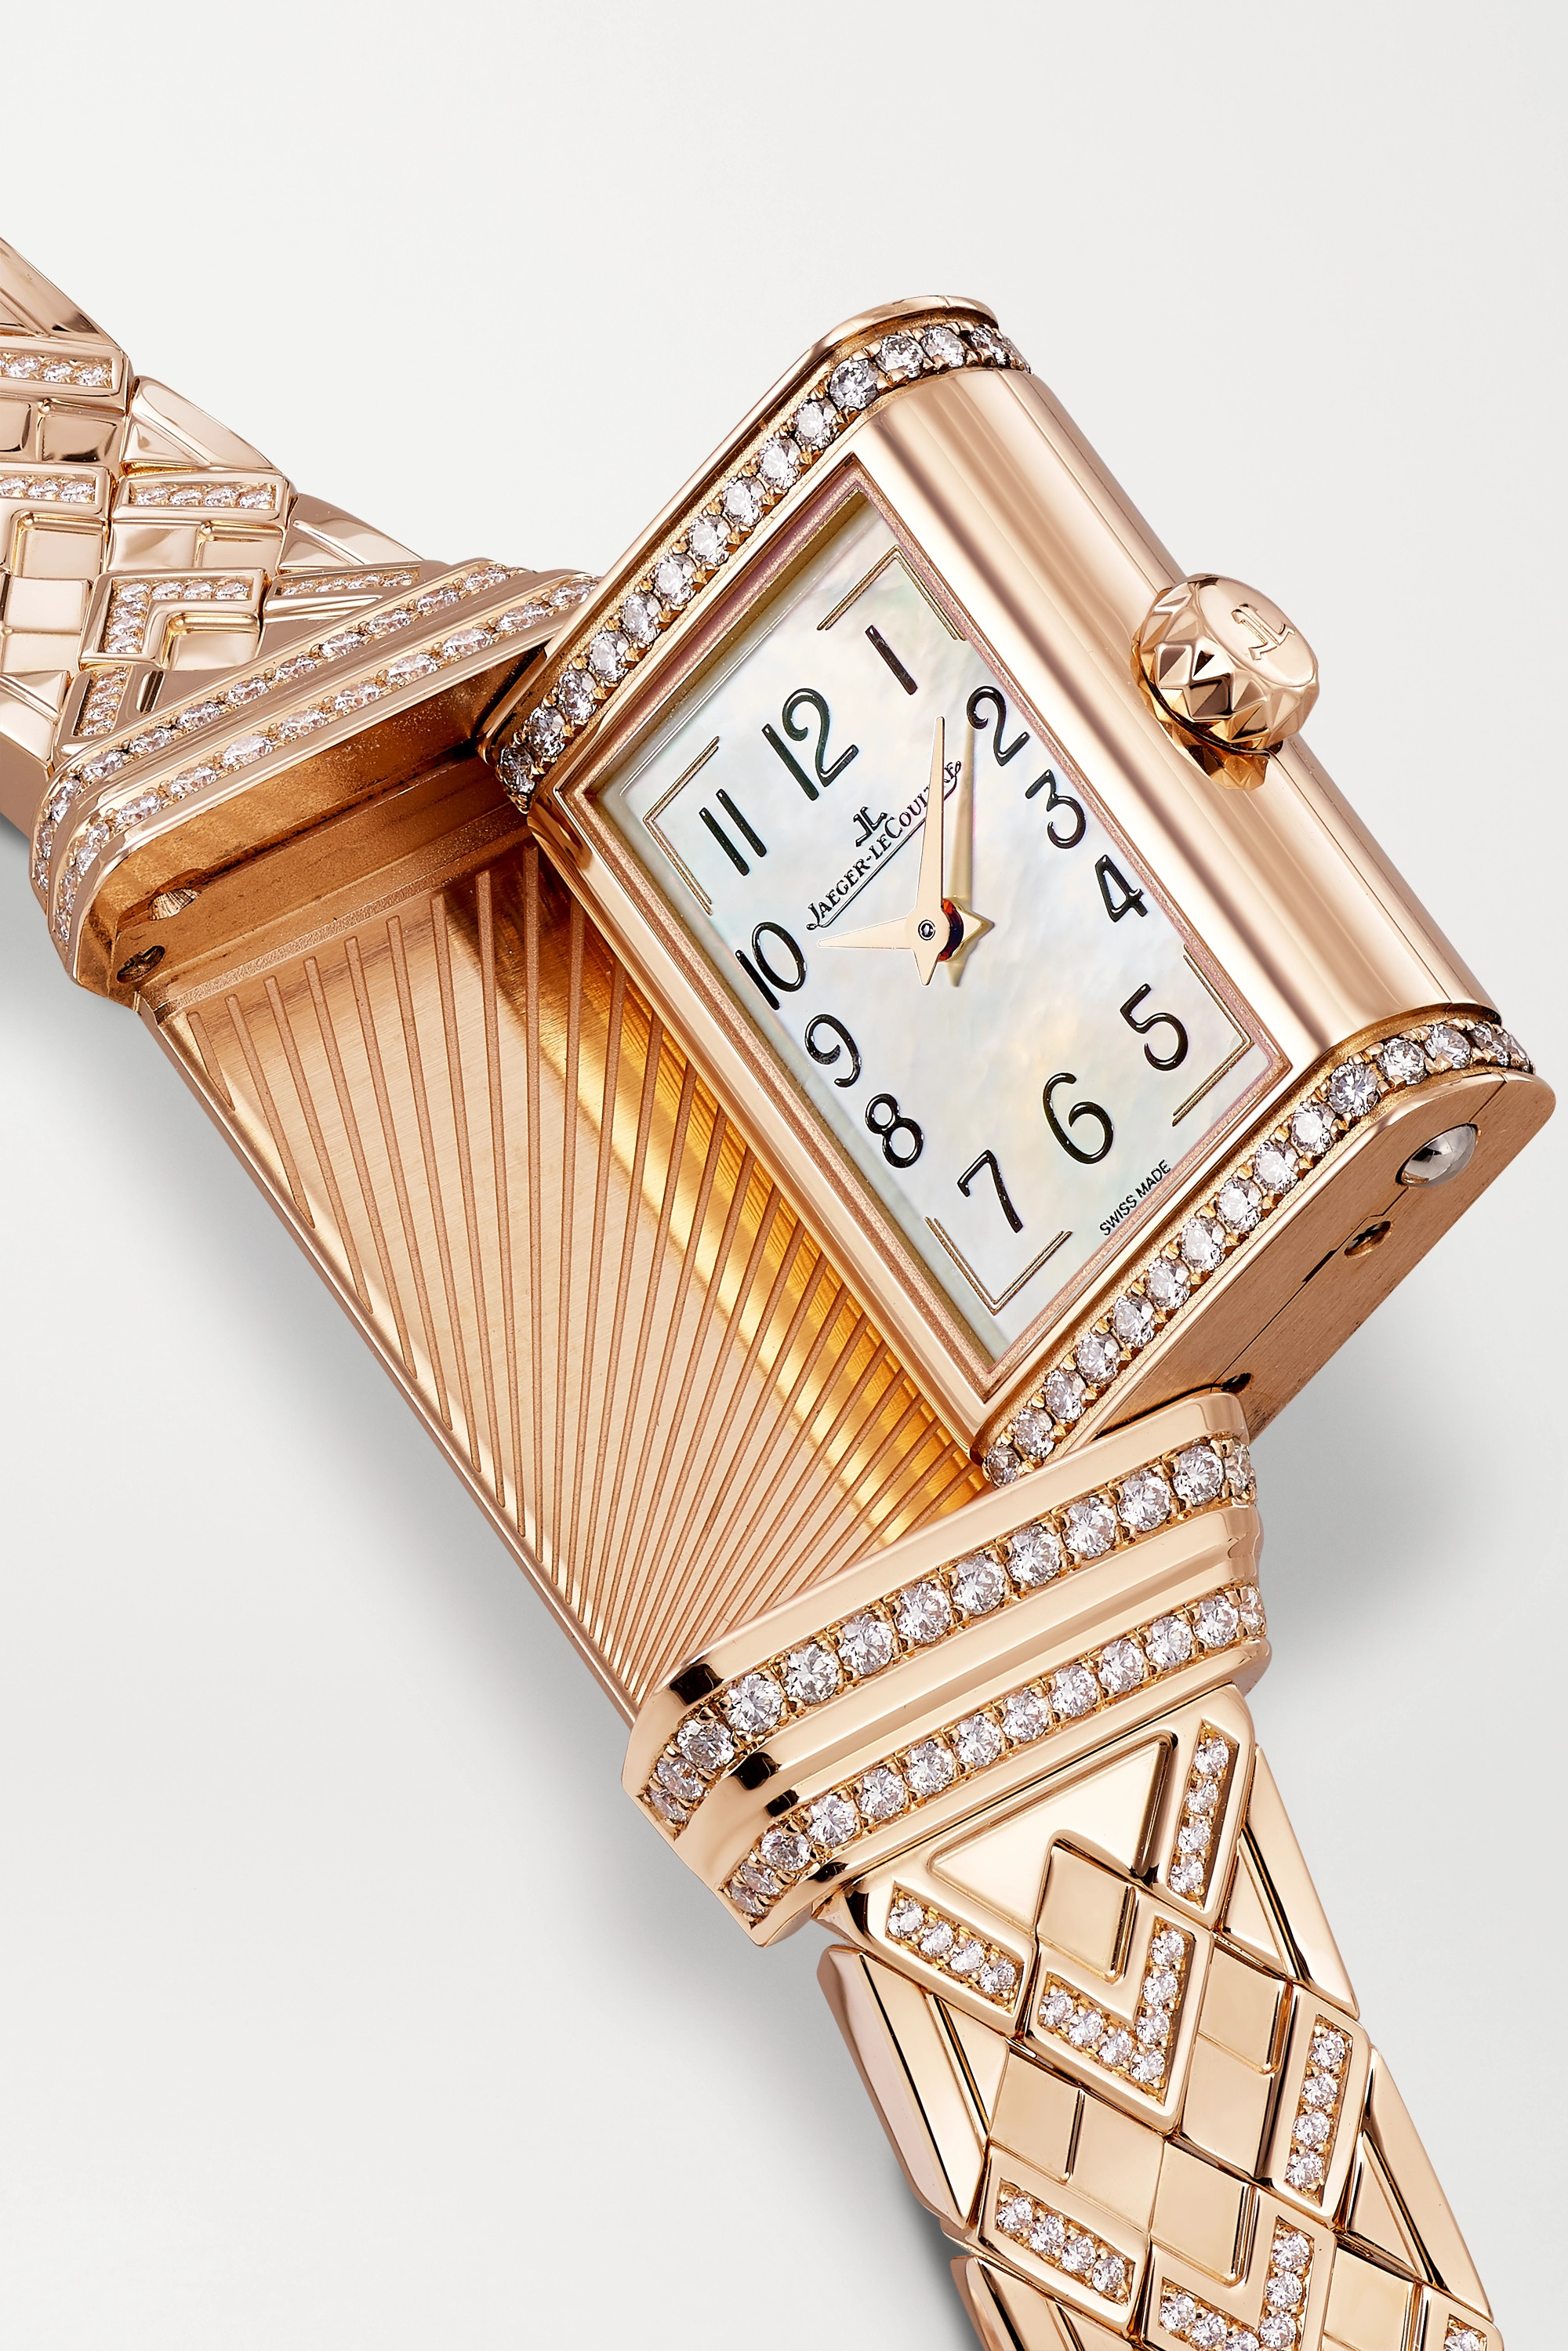 Jaeger-LeCoultre Reverso One Duetto Hand-Wound 18mm rose gold diamond watch